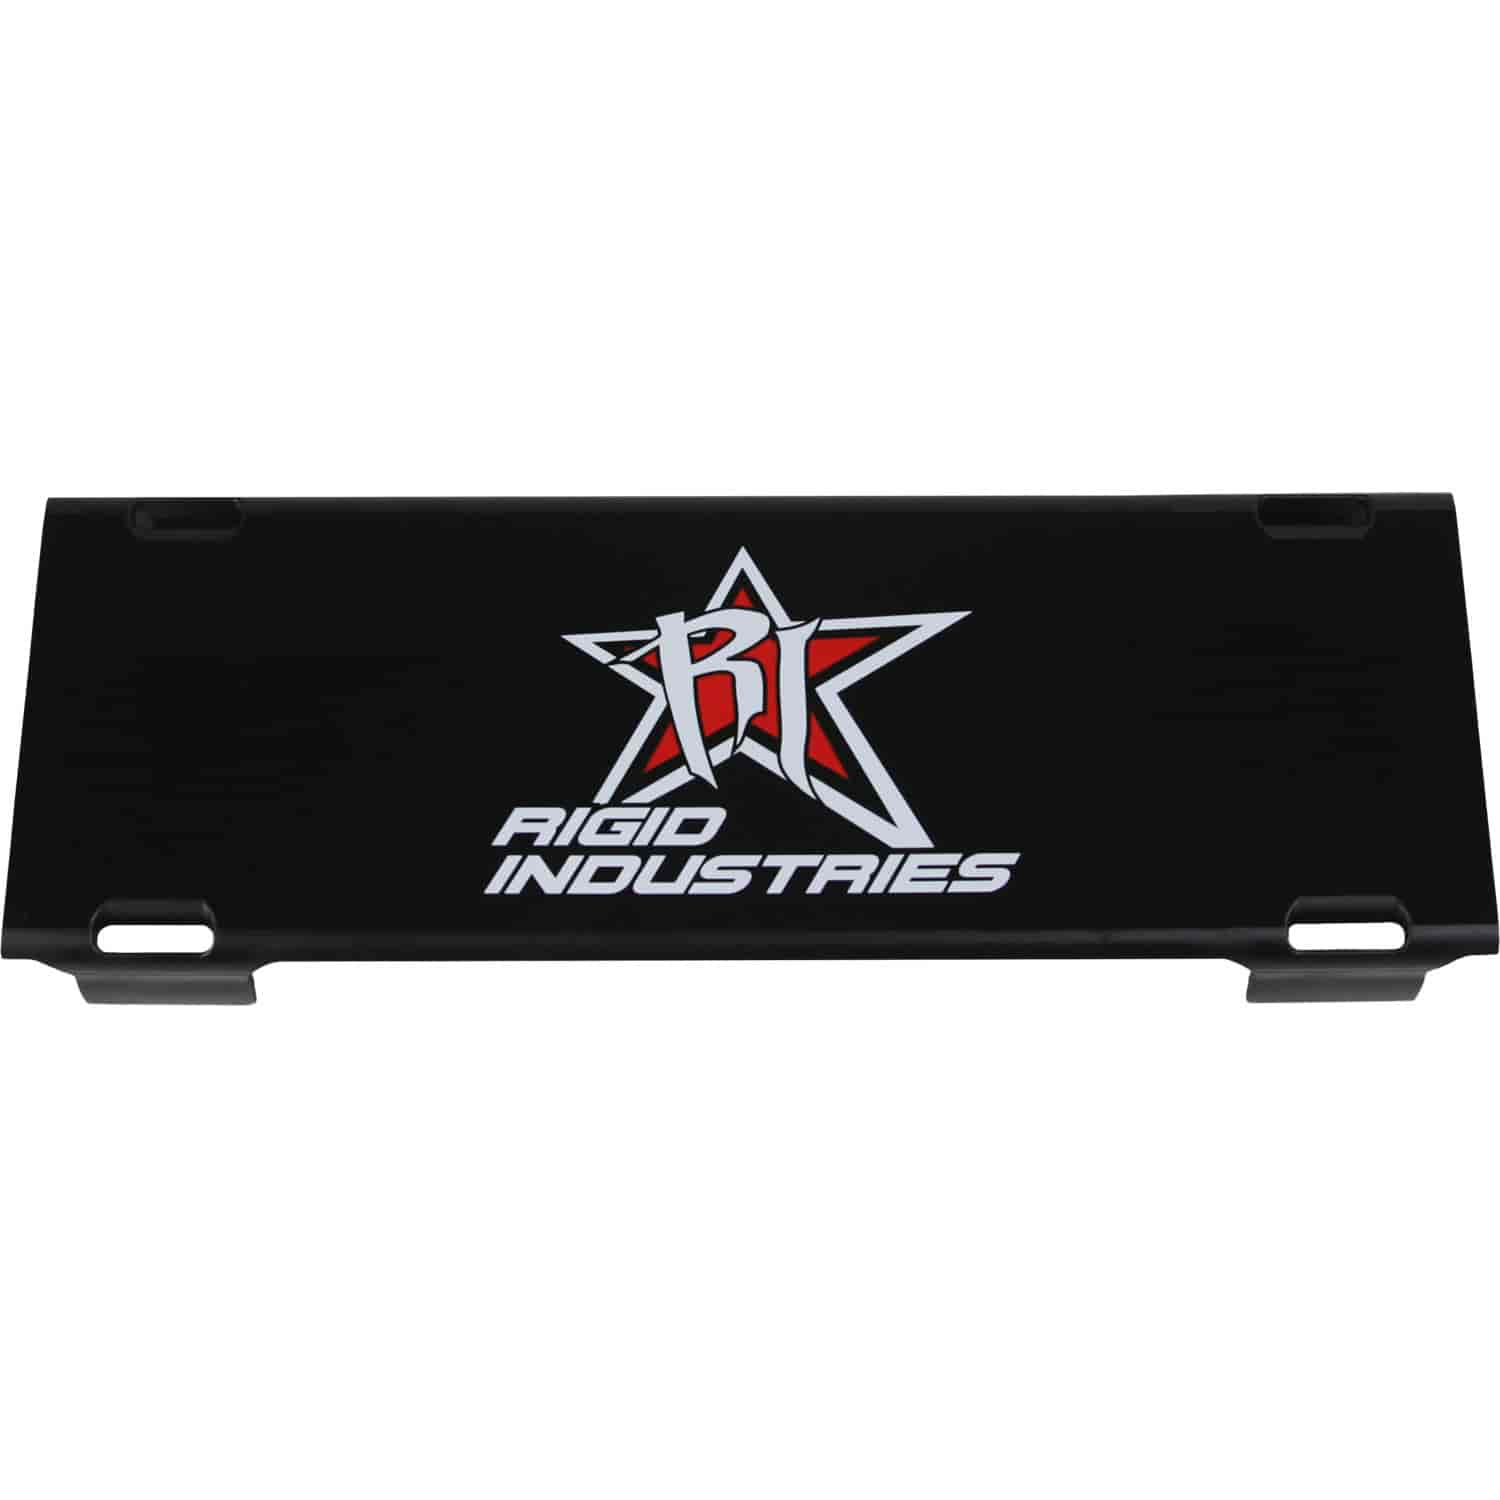 Rigid Industries 10561